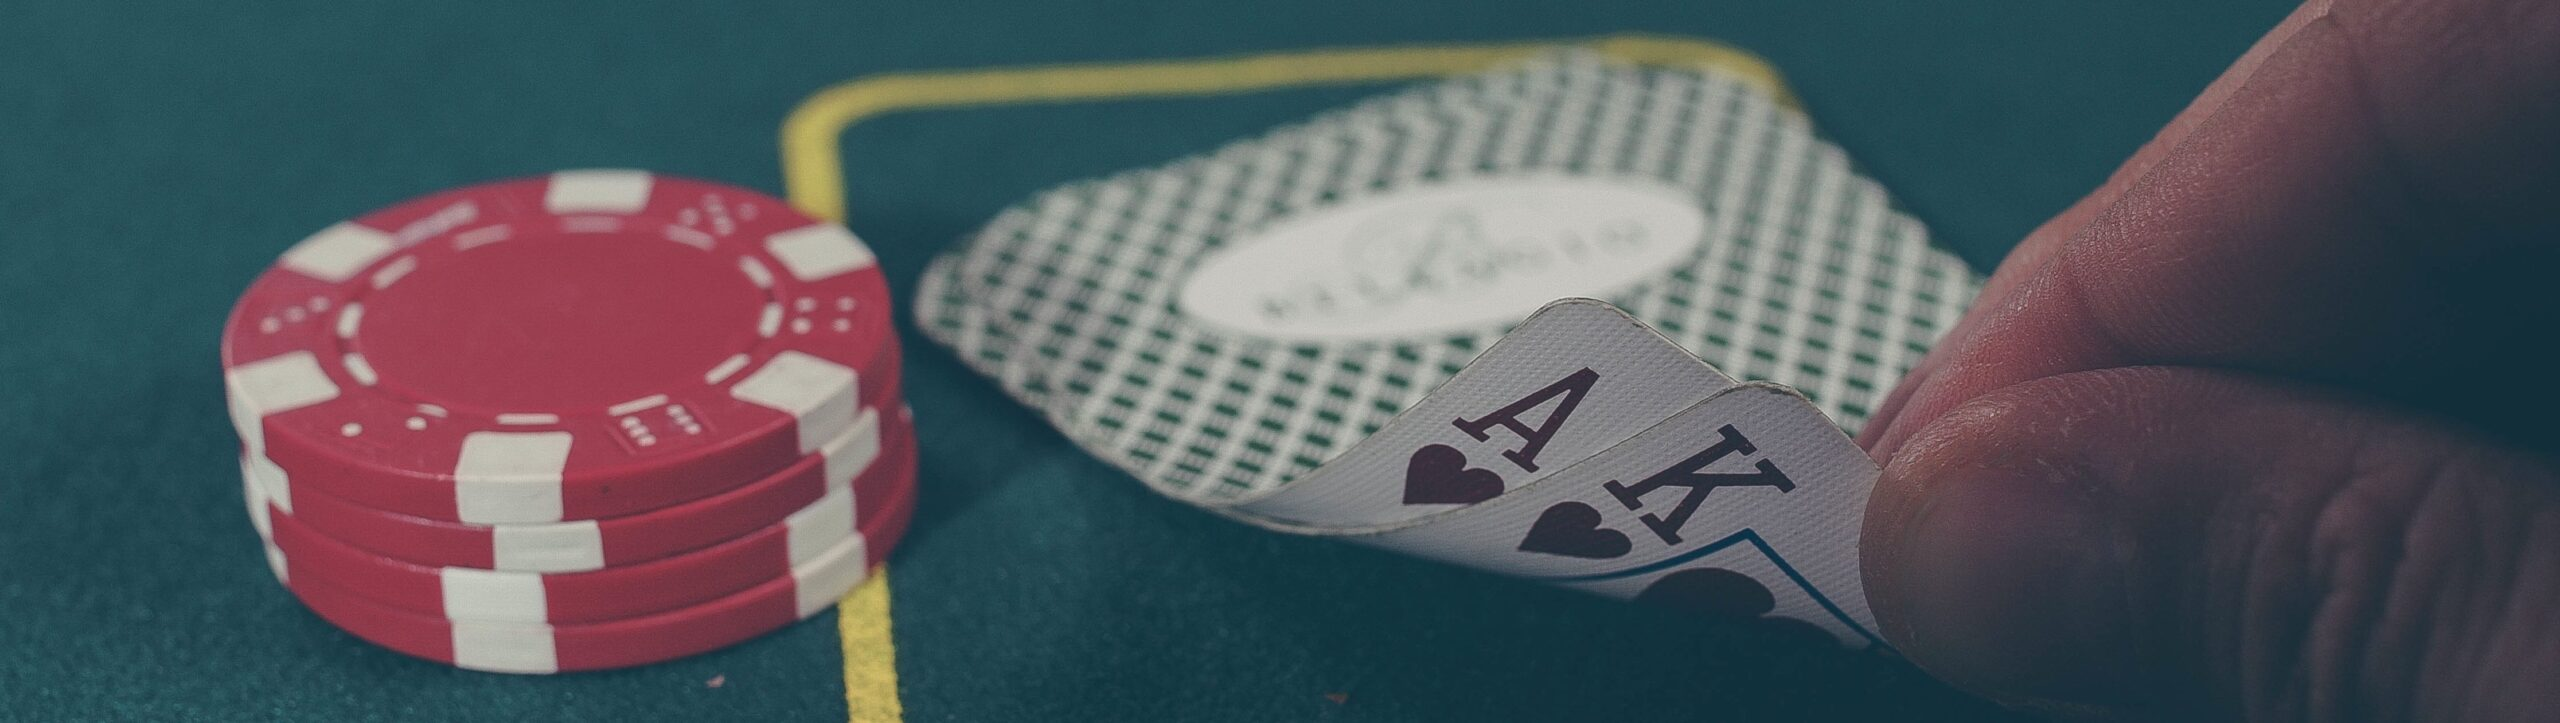 Poker table with chips and two cards, an Ace and King